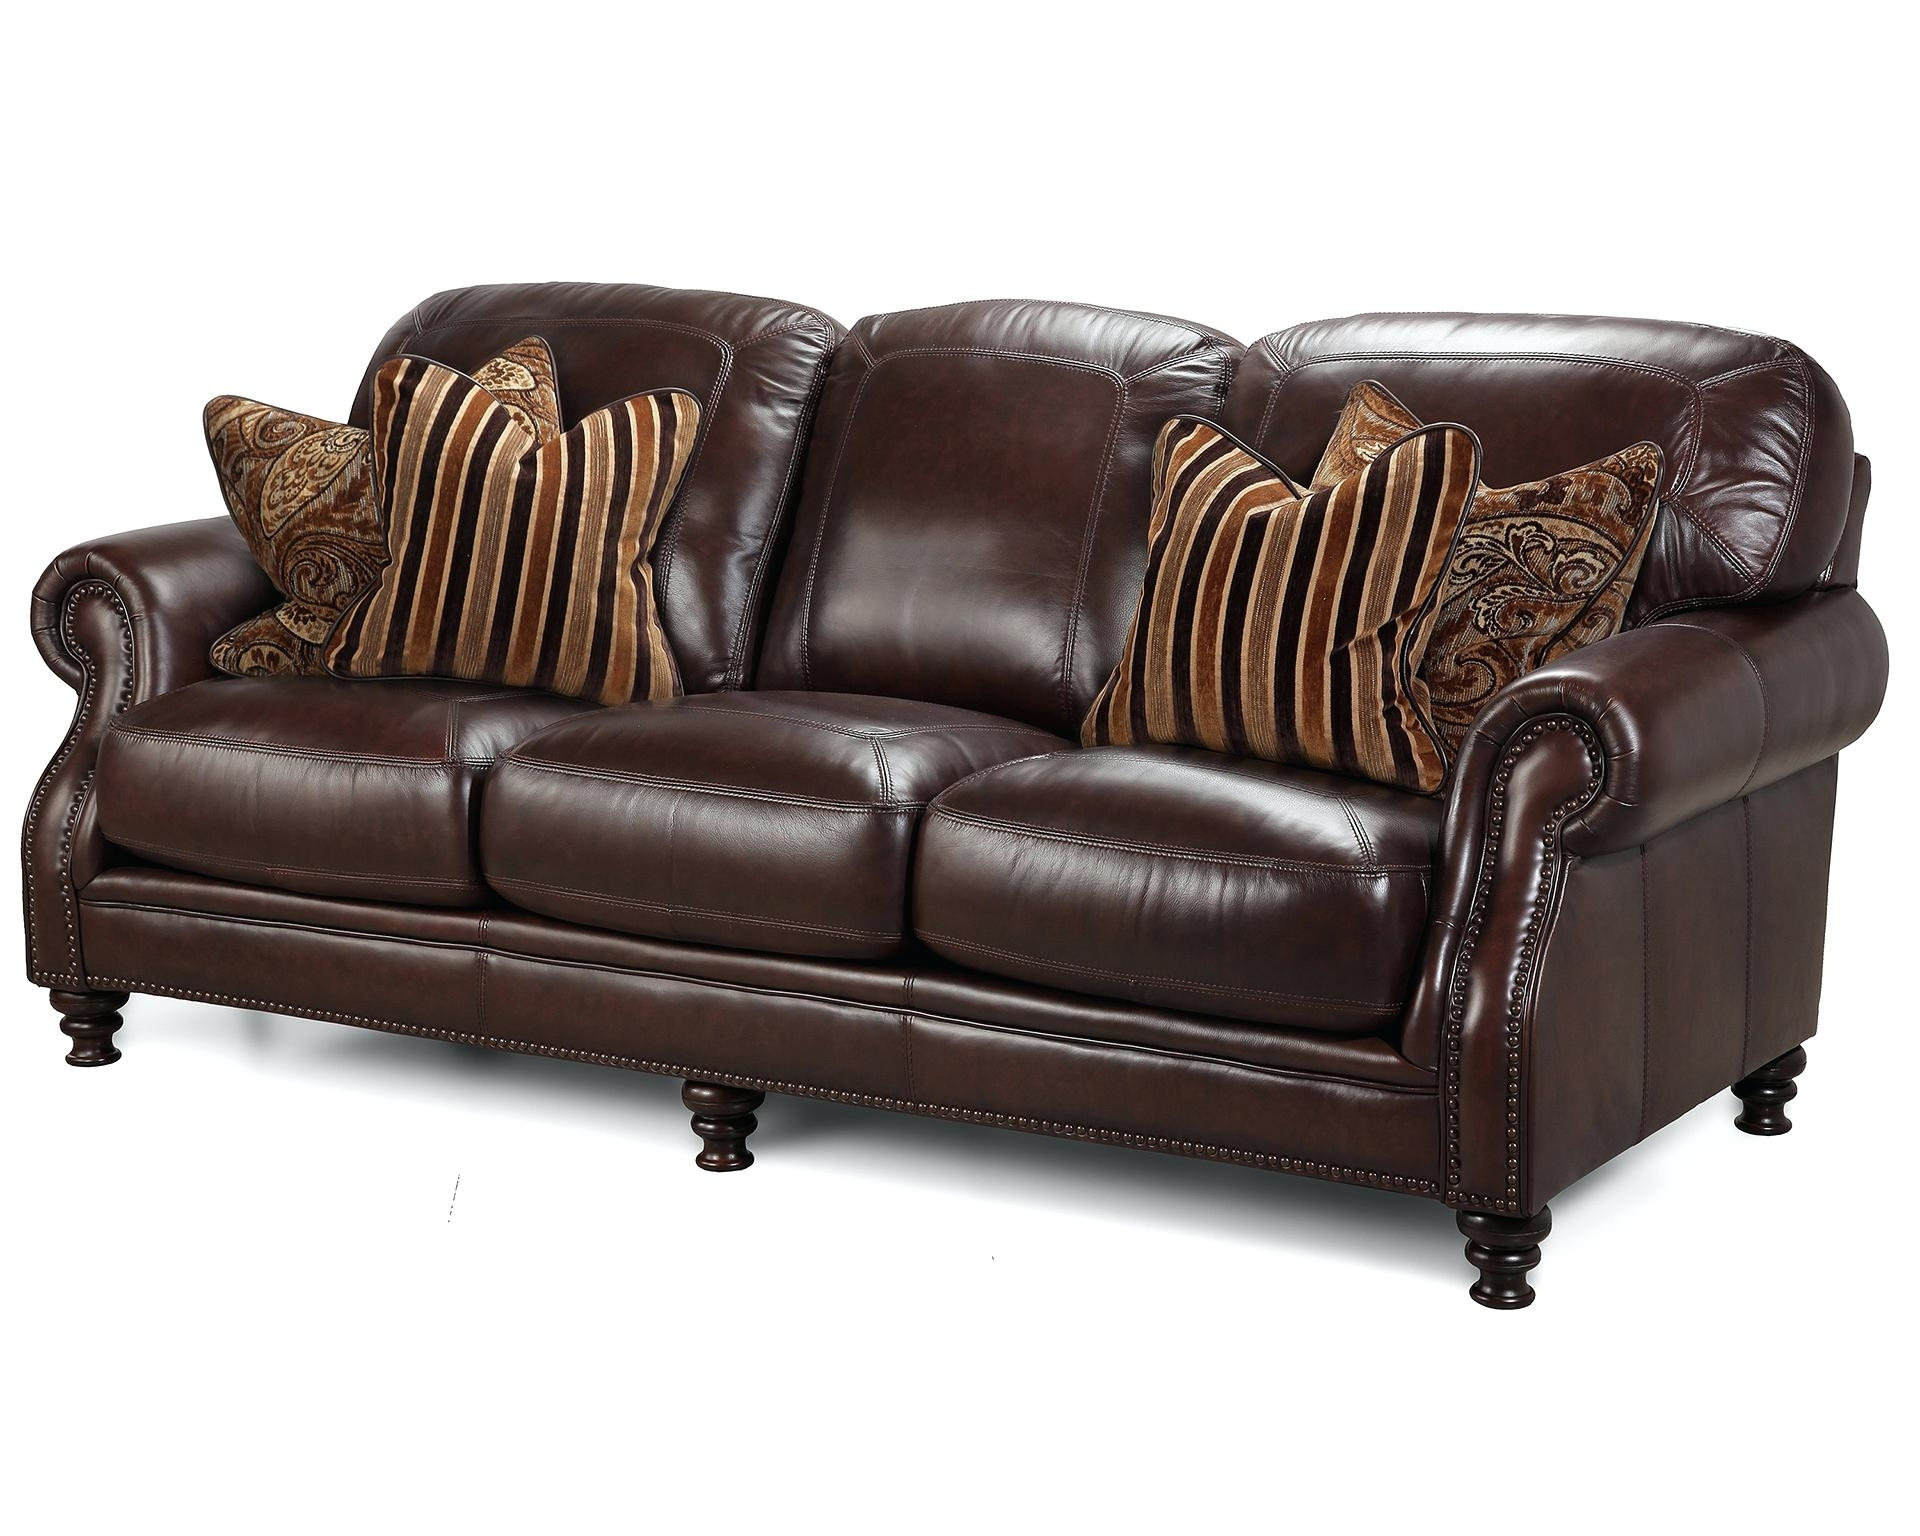 Fashionable Berkline Sofas With Regard To Berkline Home Theater Seating Costco Sofas Sofas Marvelous Leather (View 10 of 20)